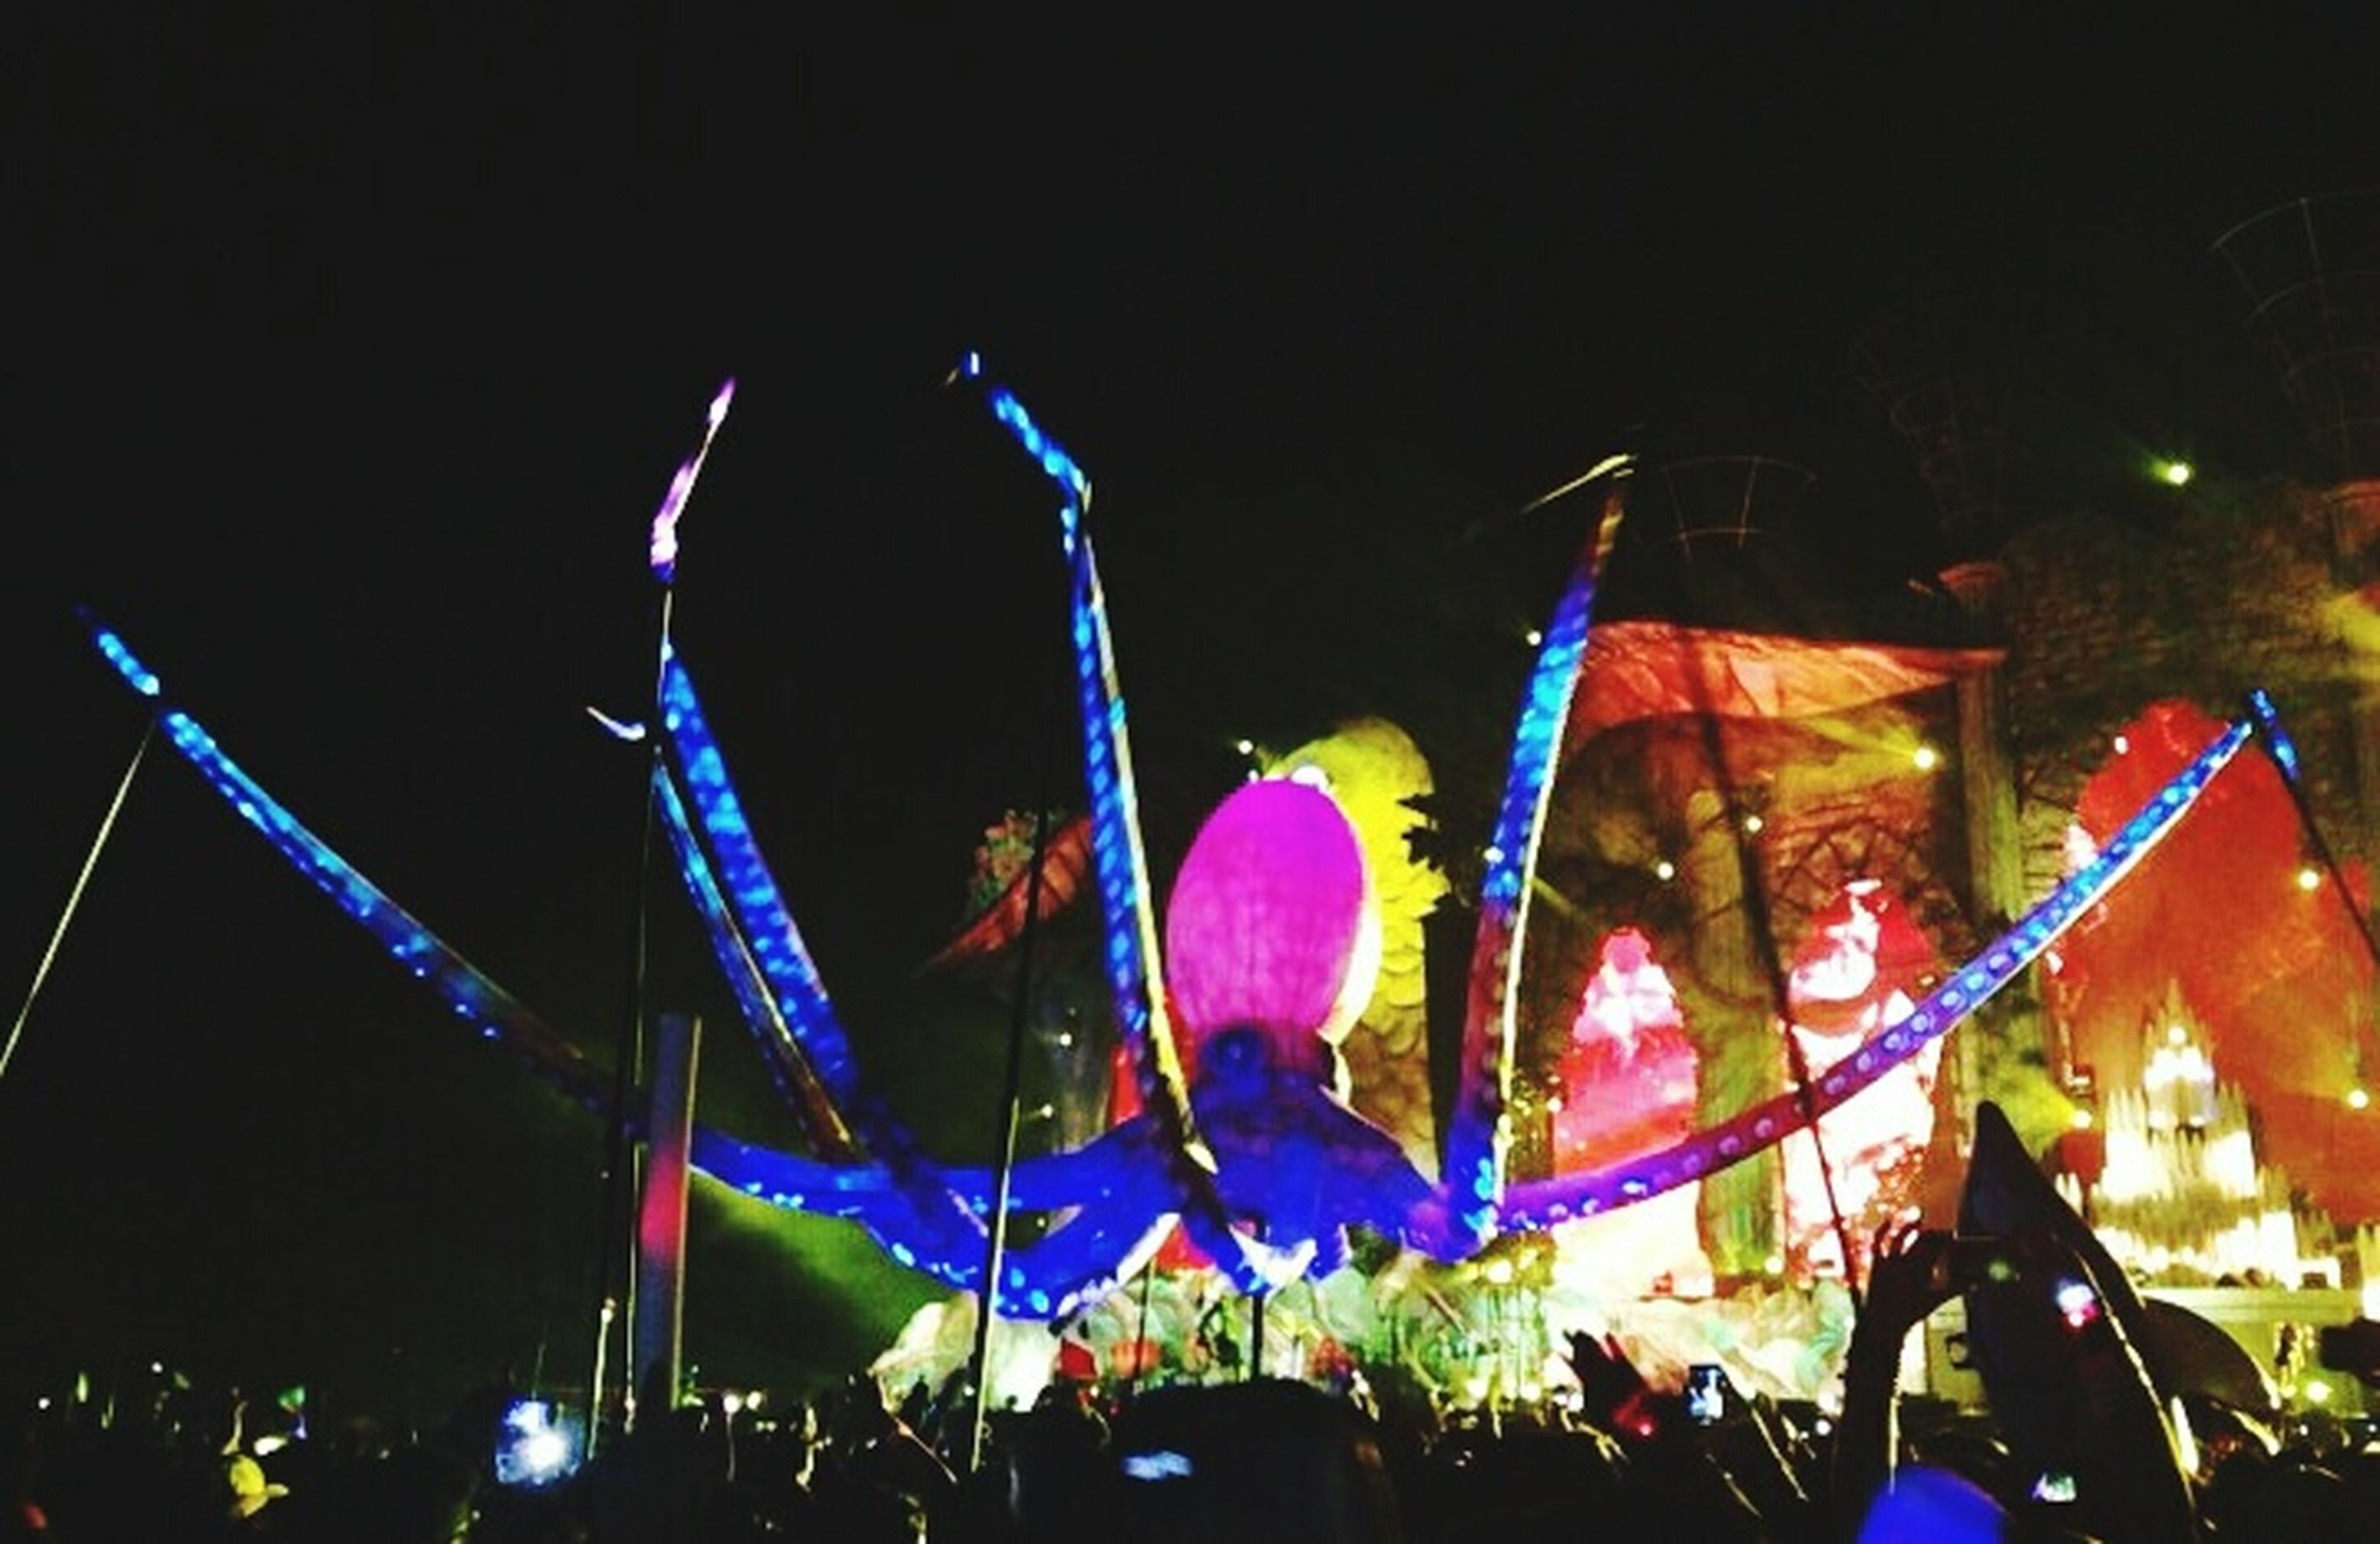 illuminated, night, multi colored, arts culture and entertainment, celebration, amusement park, low angle view, clear sky, amusement park ride, lighting equipment, decoration, sky, built structure, light - natural phenomenon, outdoors, copy space, building exterior, architecture, glowing, city